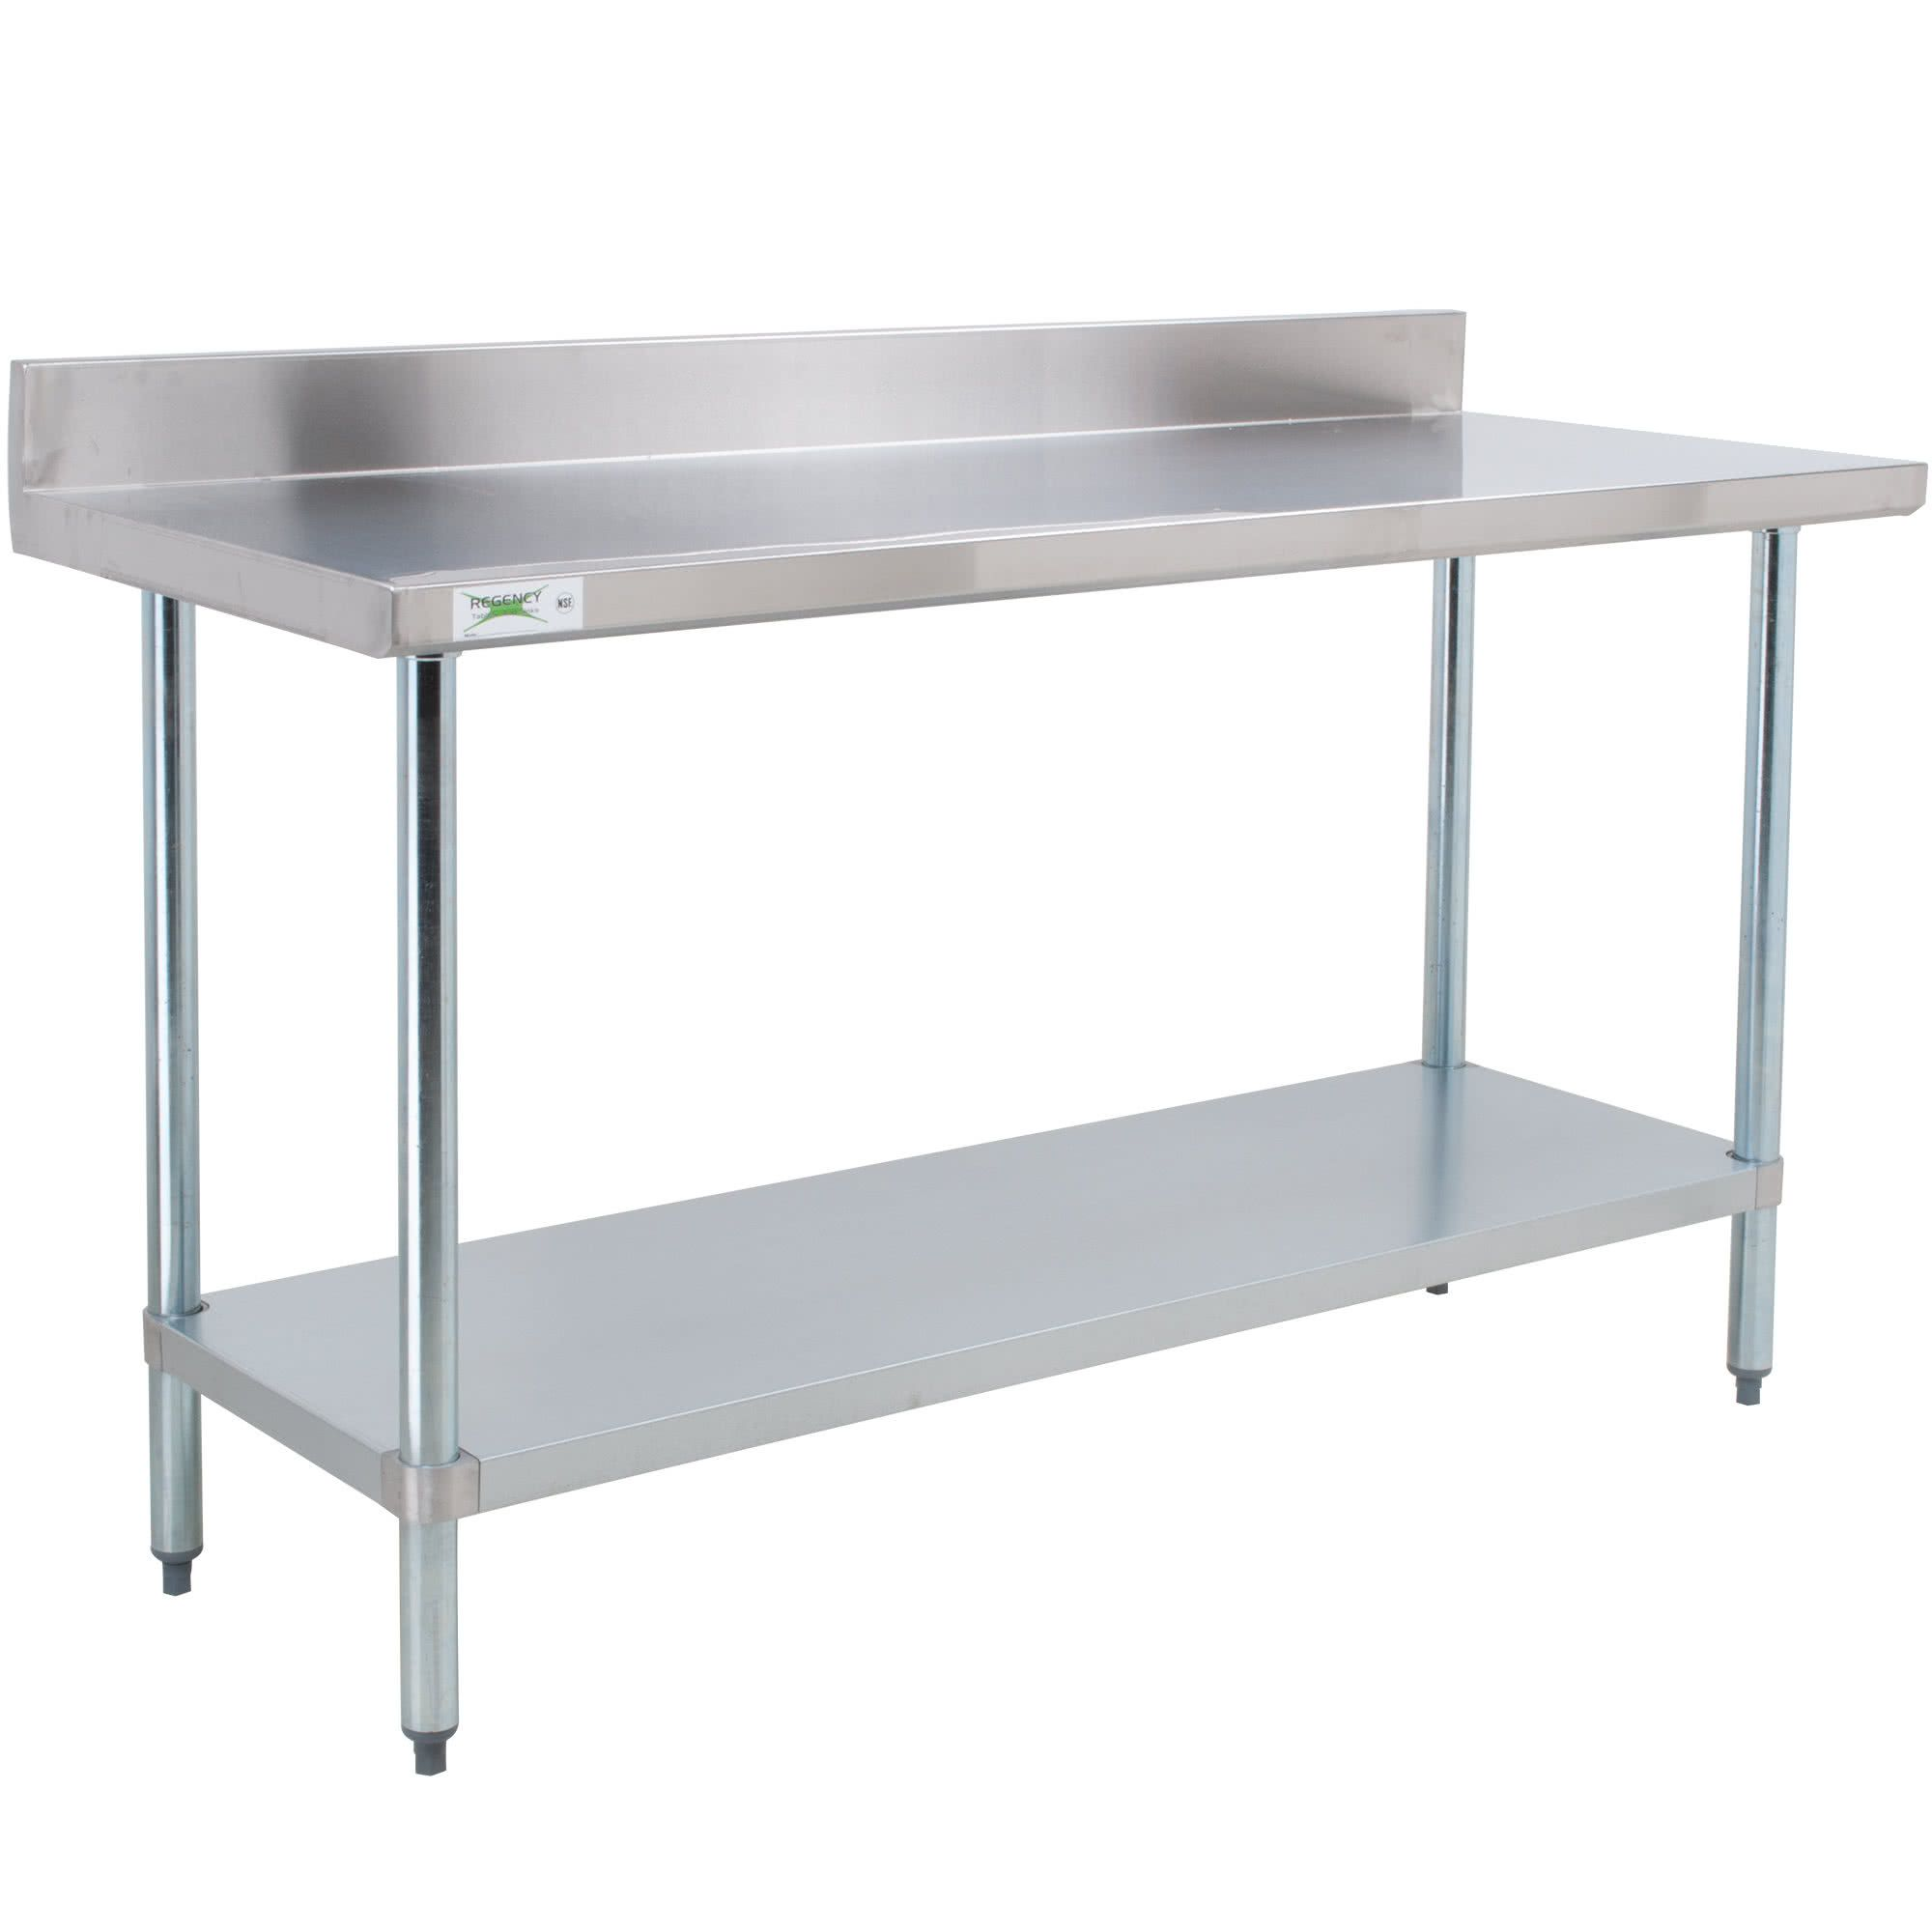 Regency 24 X 60 18 Gauge 304 Stainless Steel Commercial Work Table With 4 Backsplash And Galvanized Undershelf Stainless Steel Work Table Stainless Steel Table Steel Table